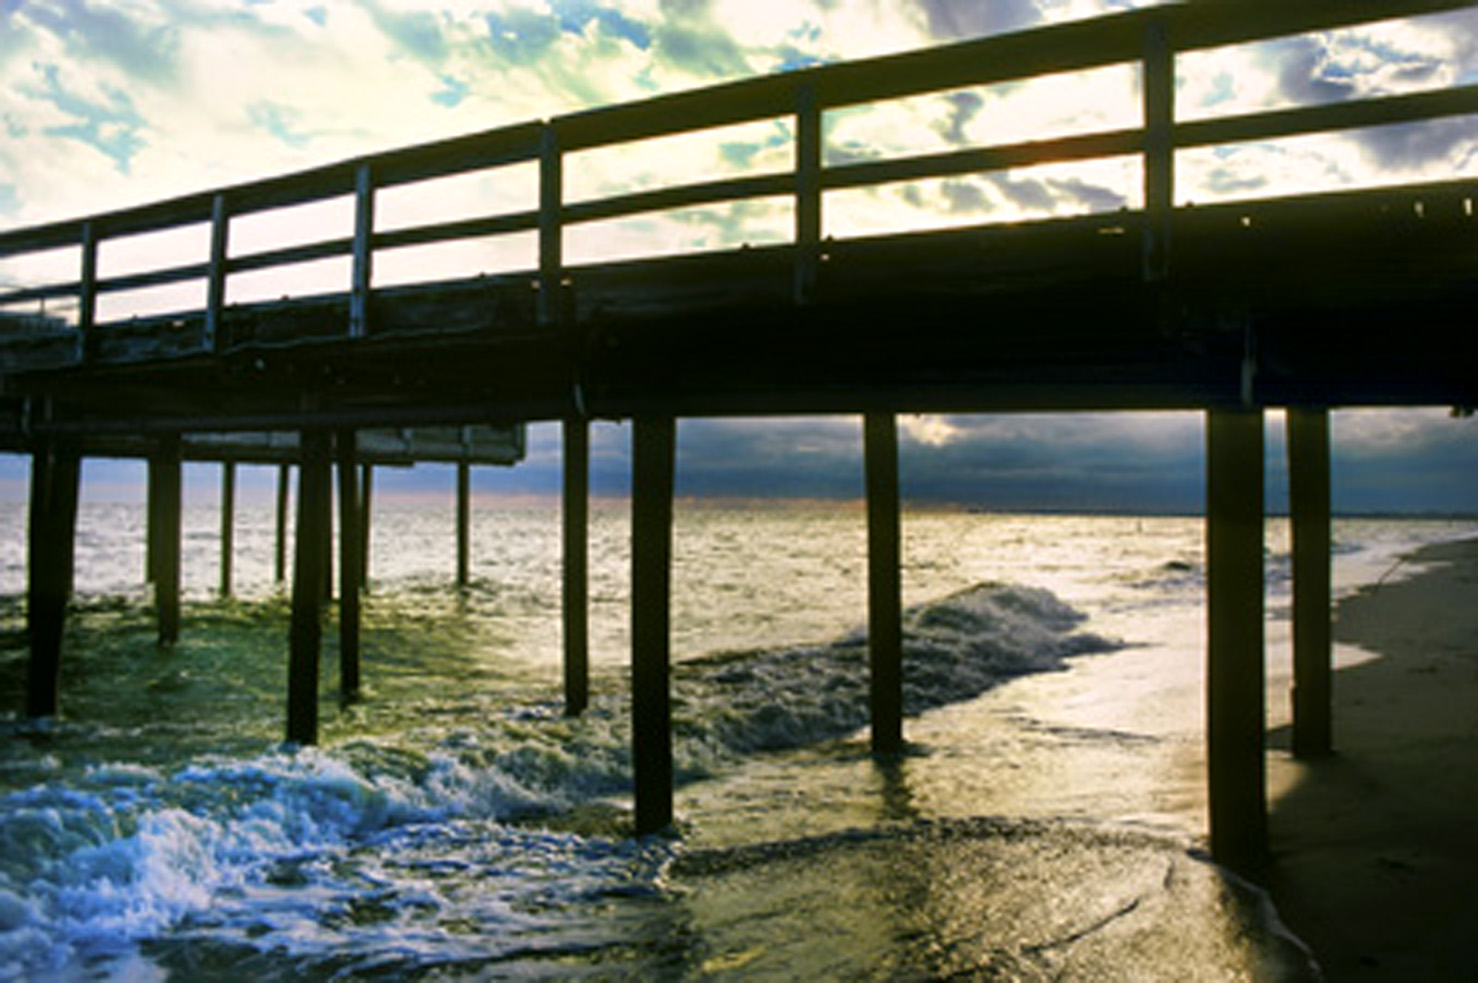 The voice in my head speaks to me of my father in a time for Ocean view fishing pier